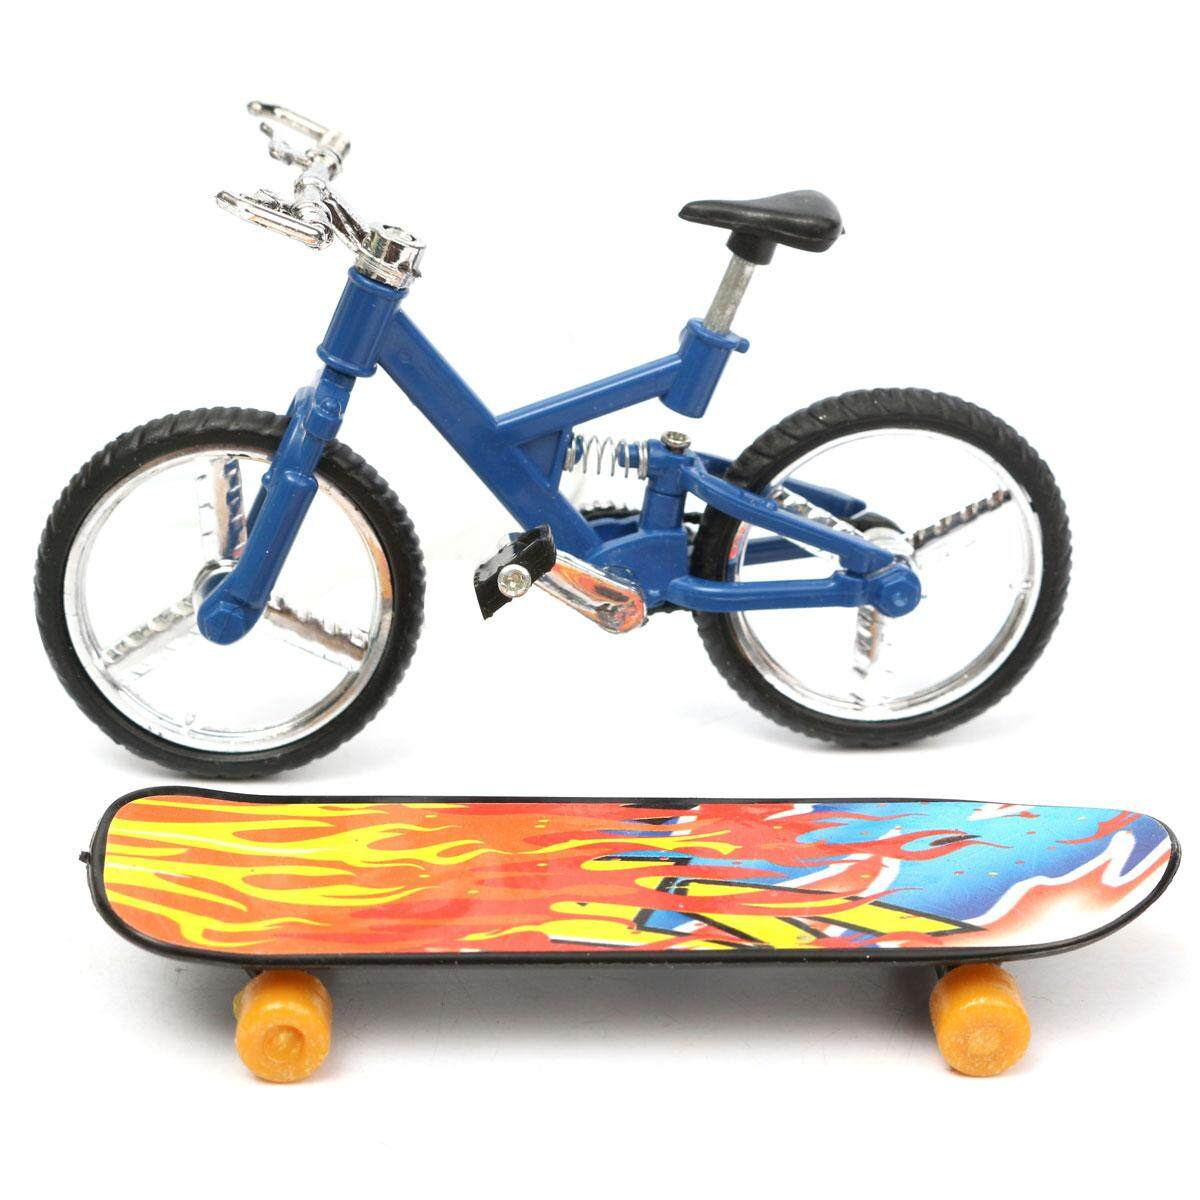 Tech Deck Finger Bike Bicycle+ Finger Board Boy Kid Children Wheel Bmx Toy Gift By Teamwin.